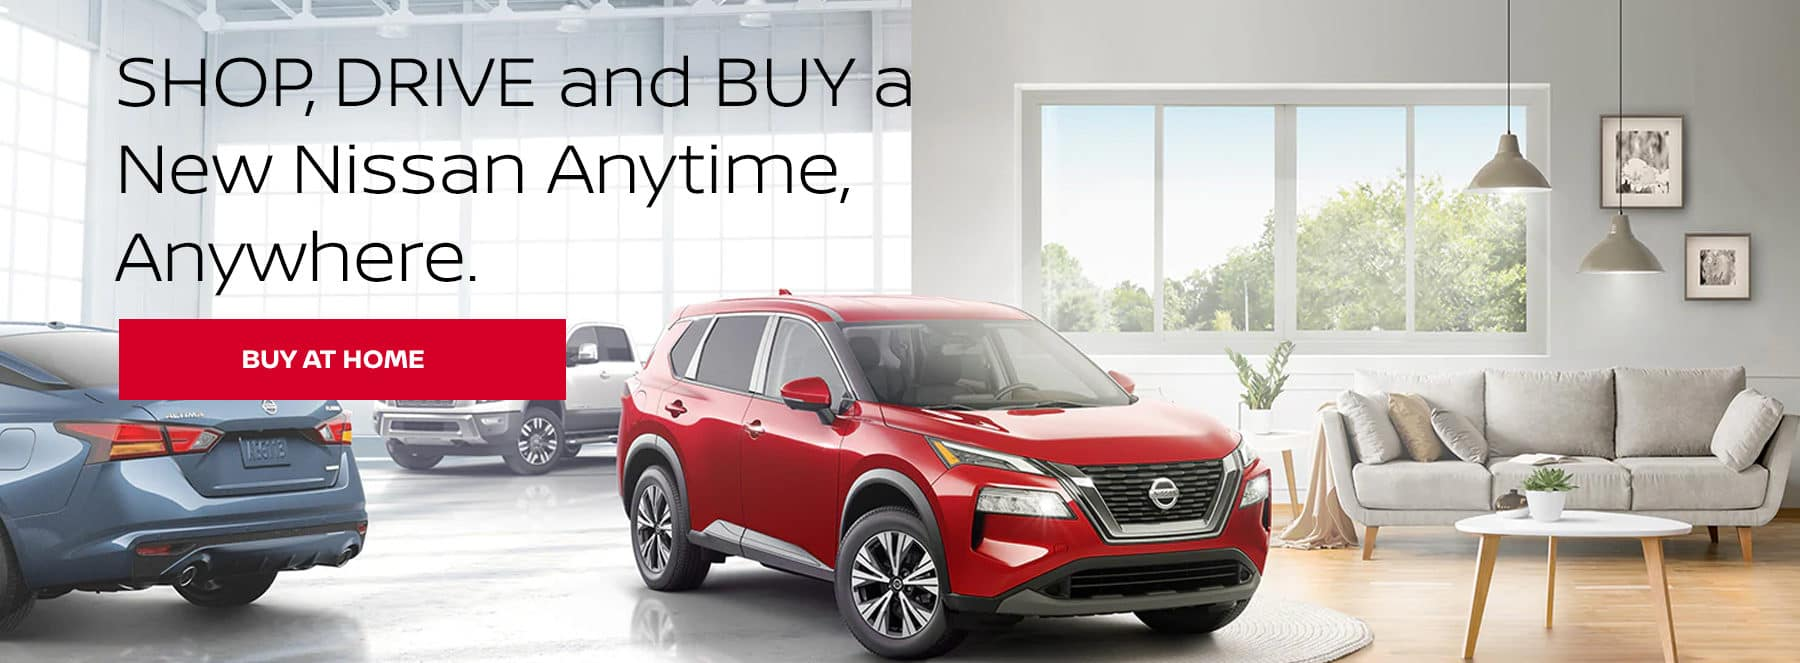 Shop, Drive, and Buy a New Nissan Anytime, Anywhere